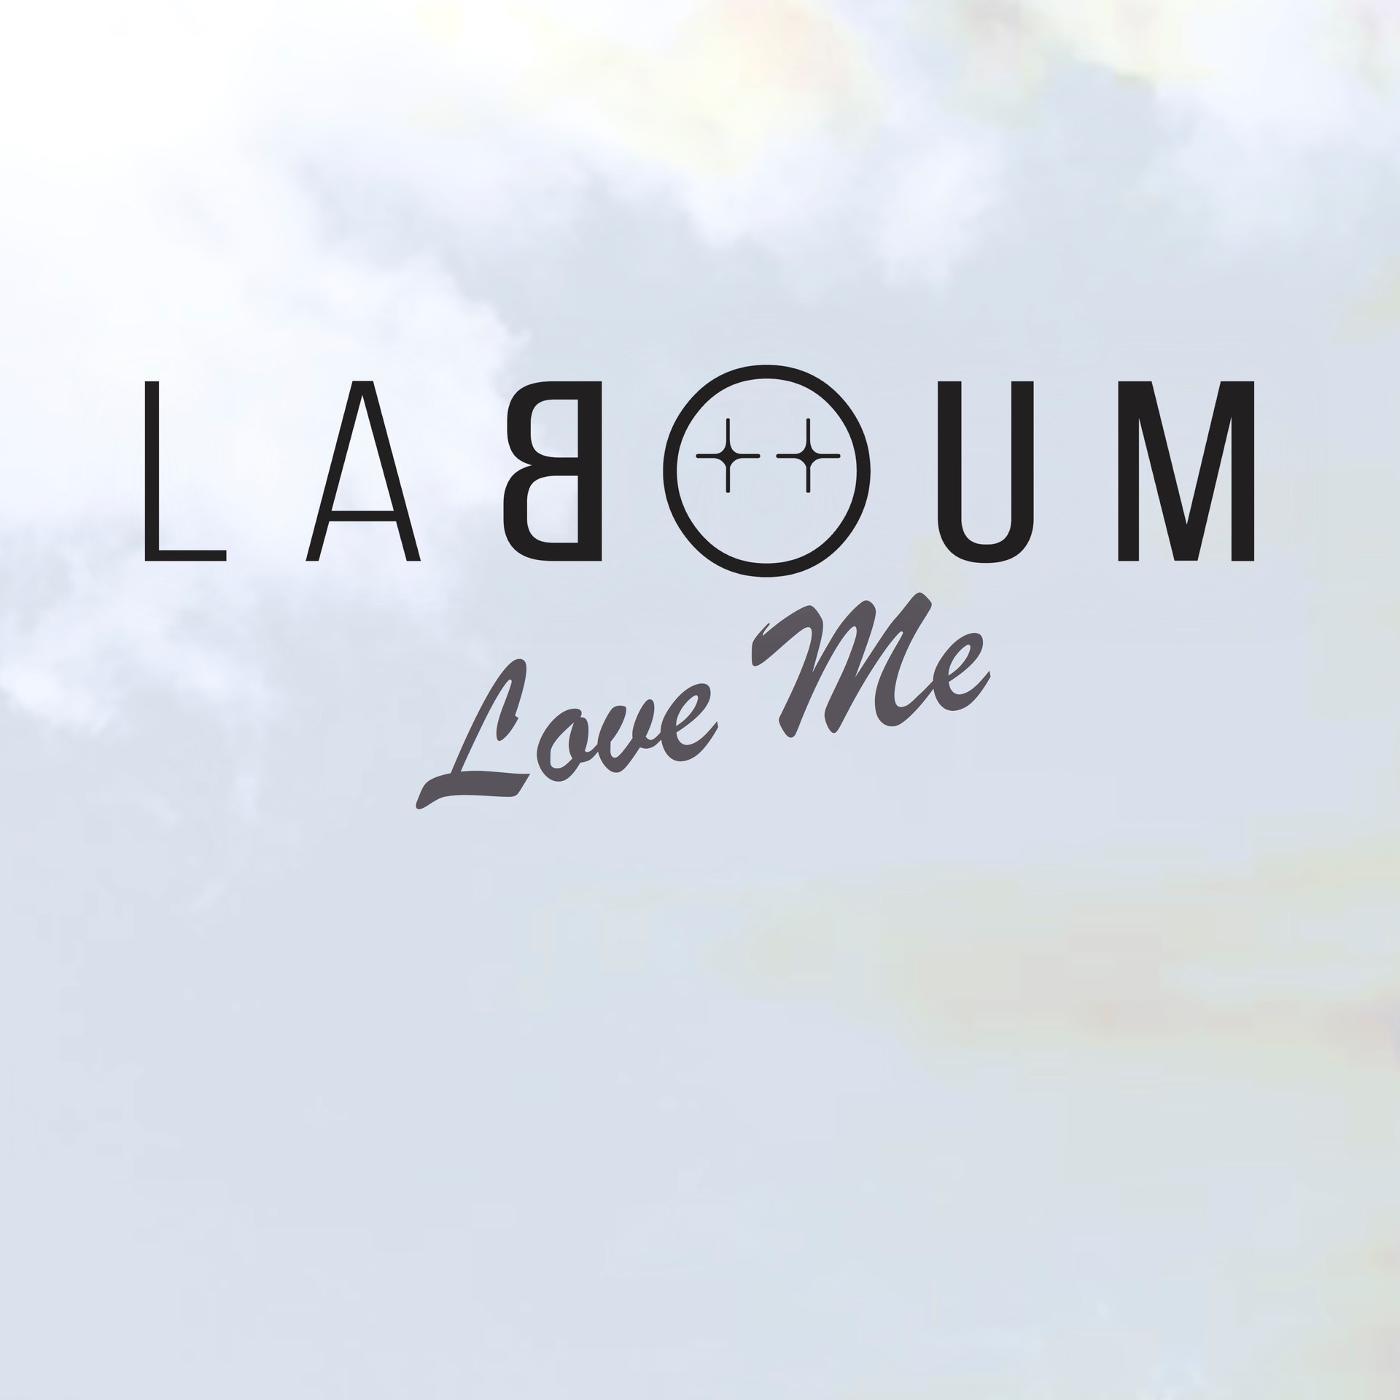 Love Me (LABOUM)